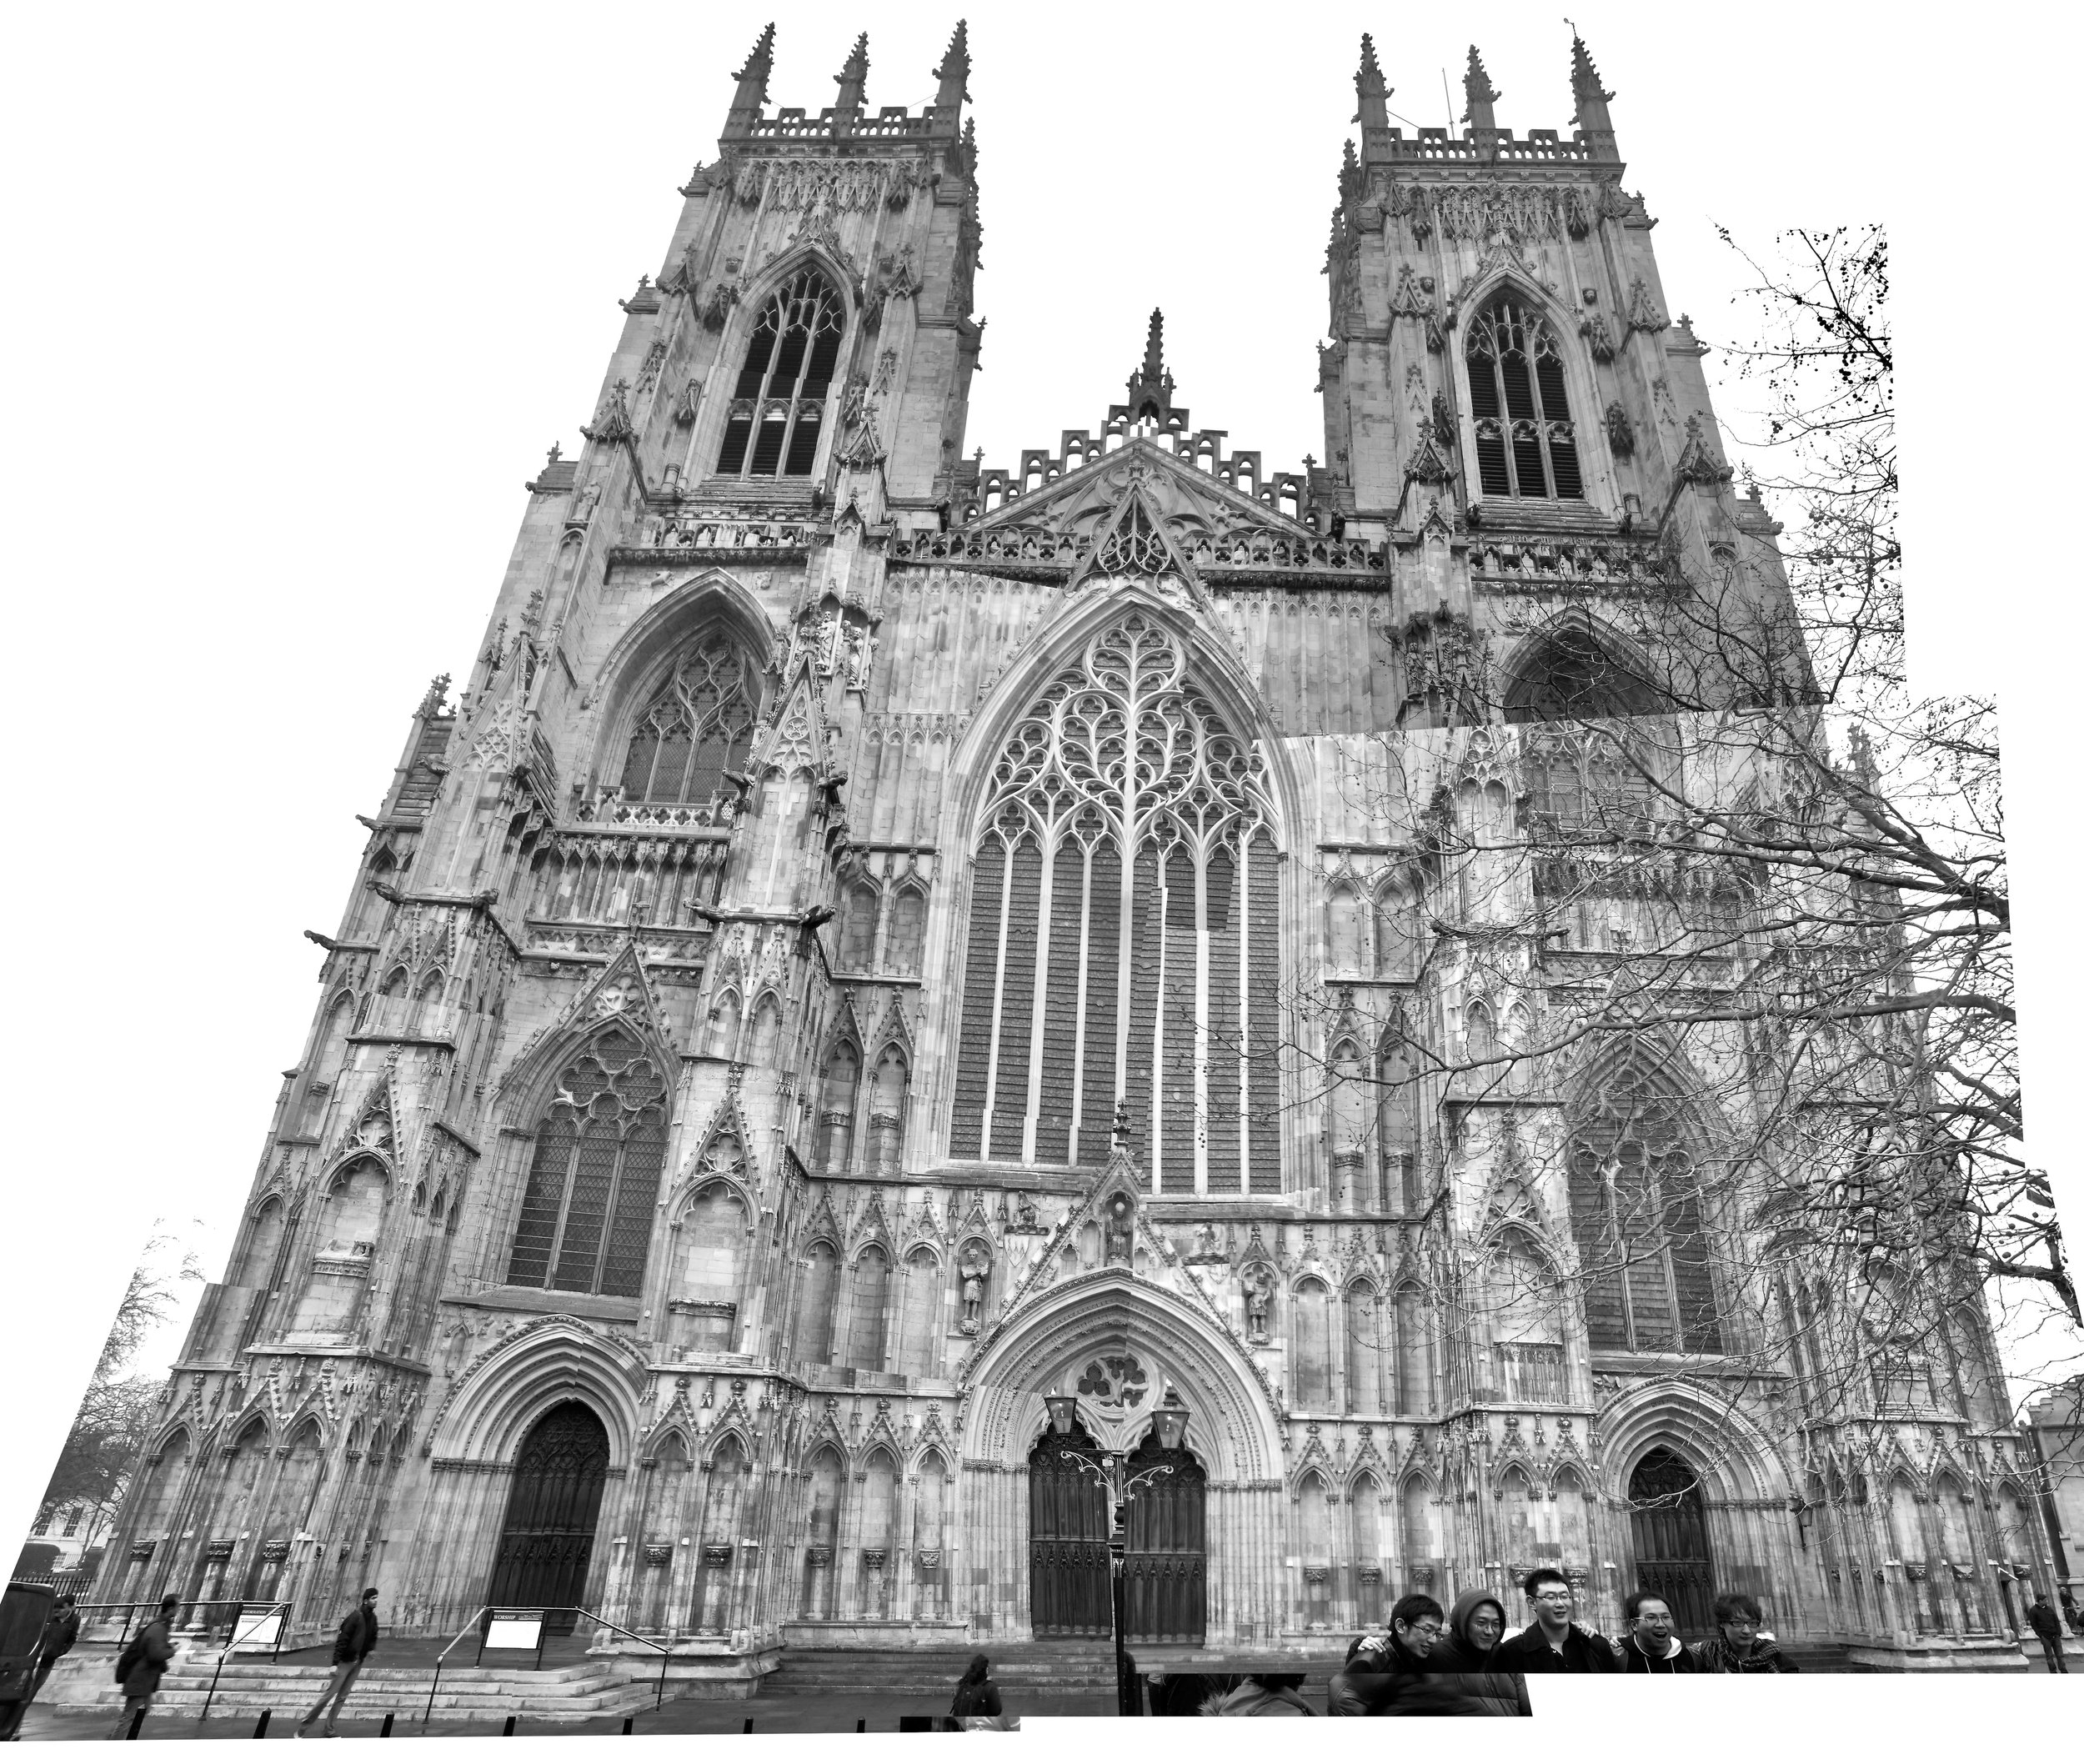 York Minster. several photos stitched together. The full resolution pic is 34 MB.